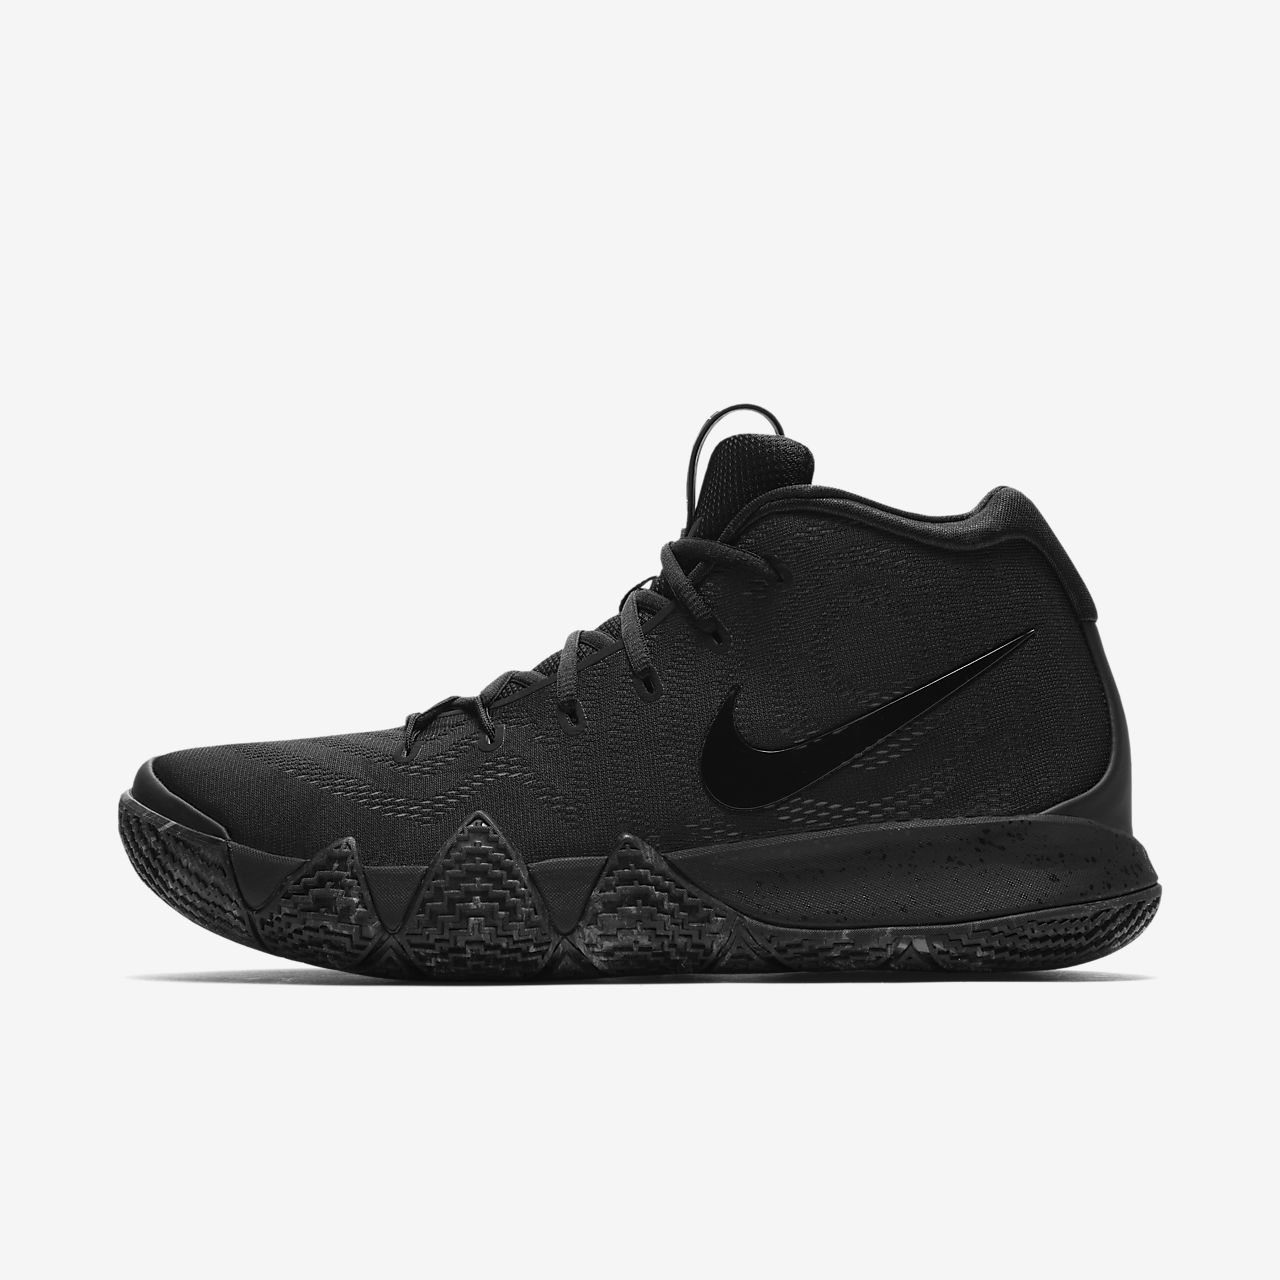 Low Resolution Kyrie 4 Basketball Shoe Kyrie 4 Basketball Shoe 9cd8a9f48